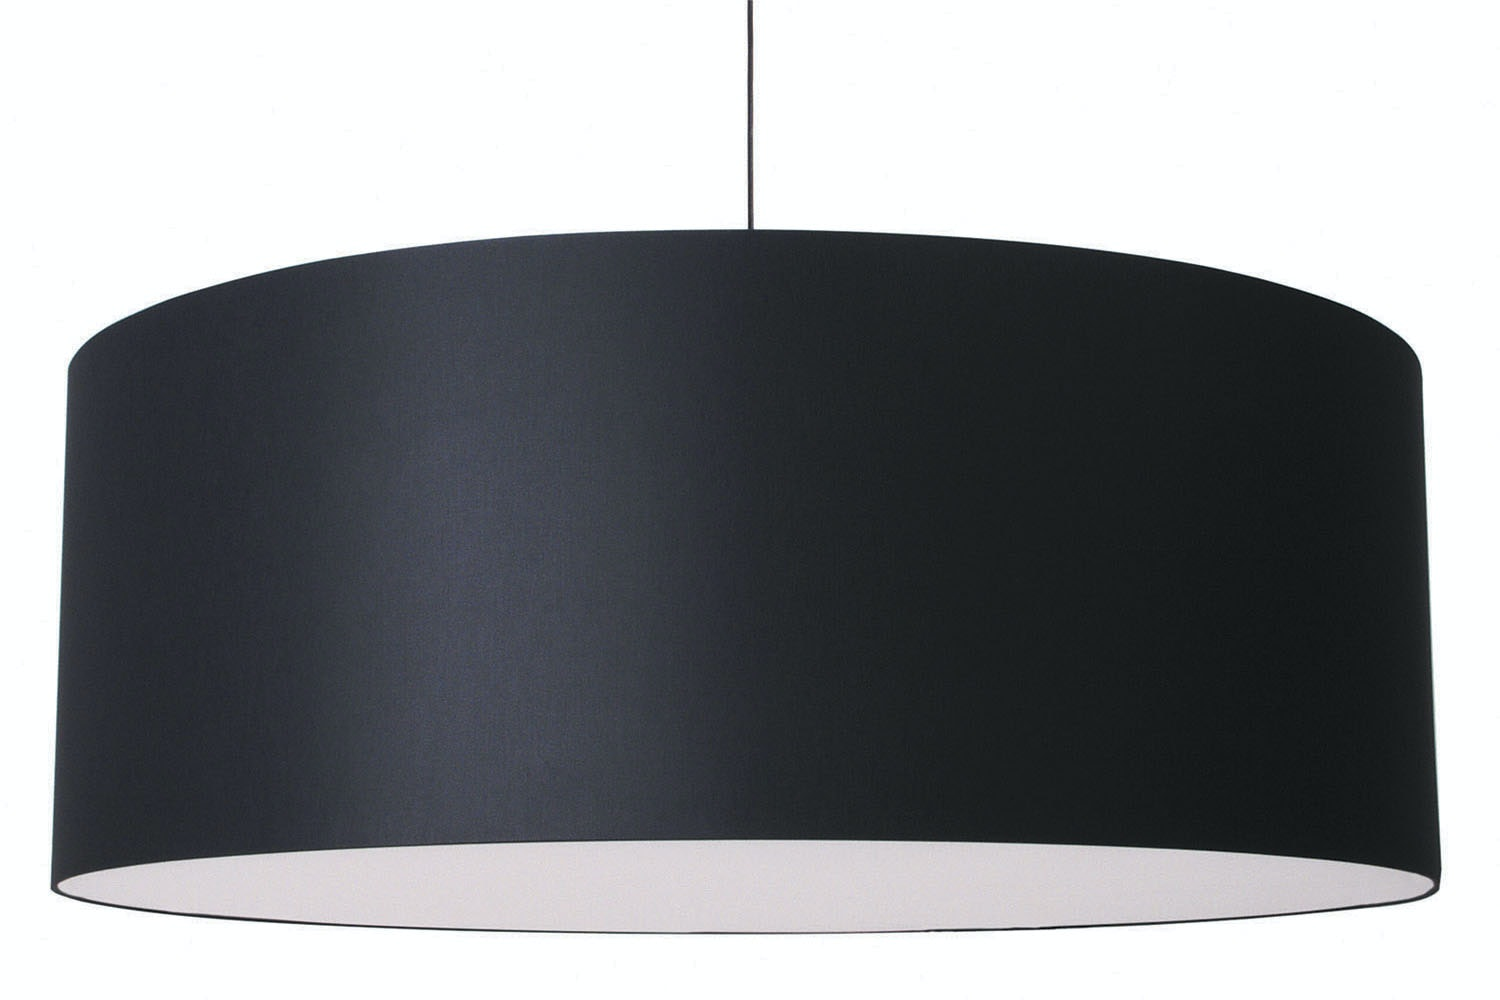 Round Boon Suspension Lamp by Piet Boon for Moooi